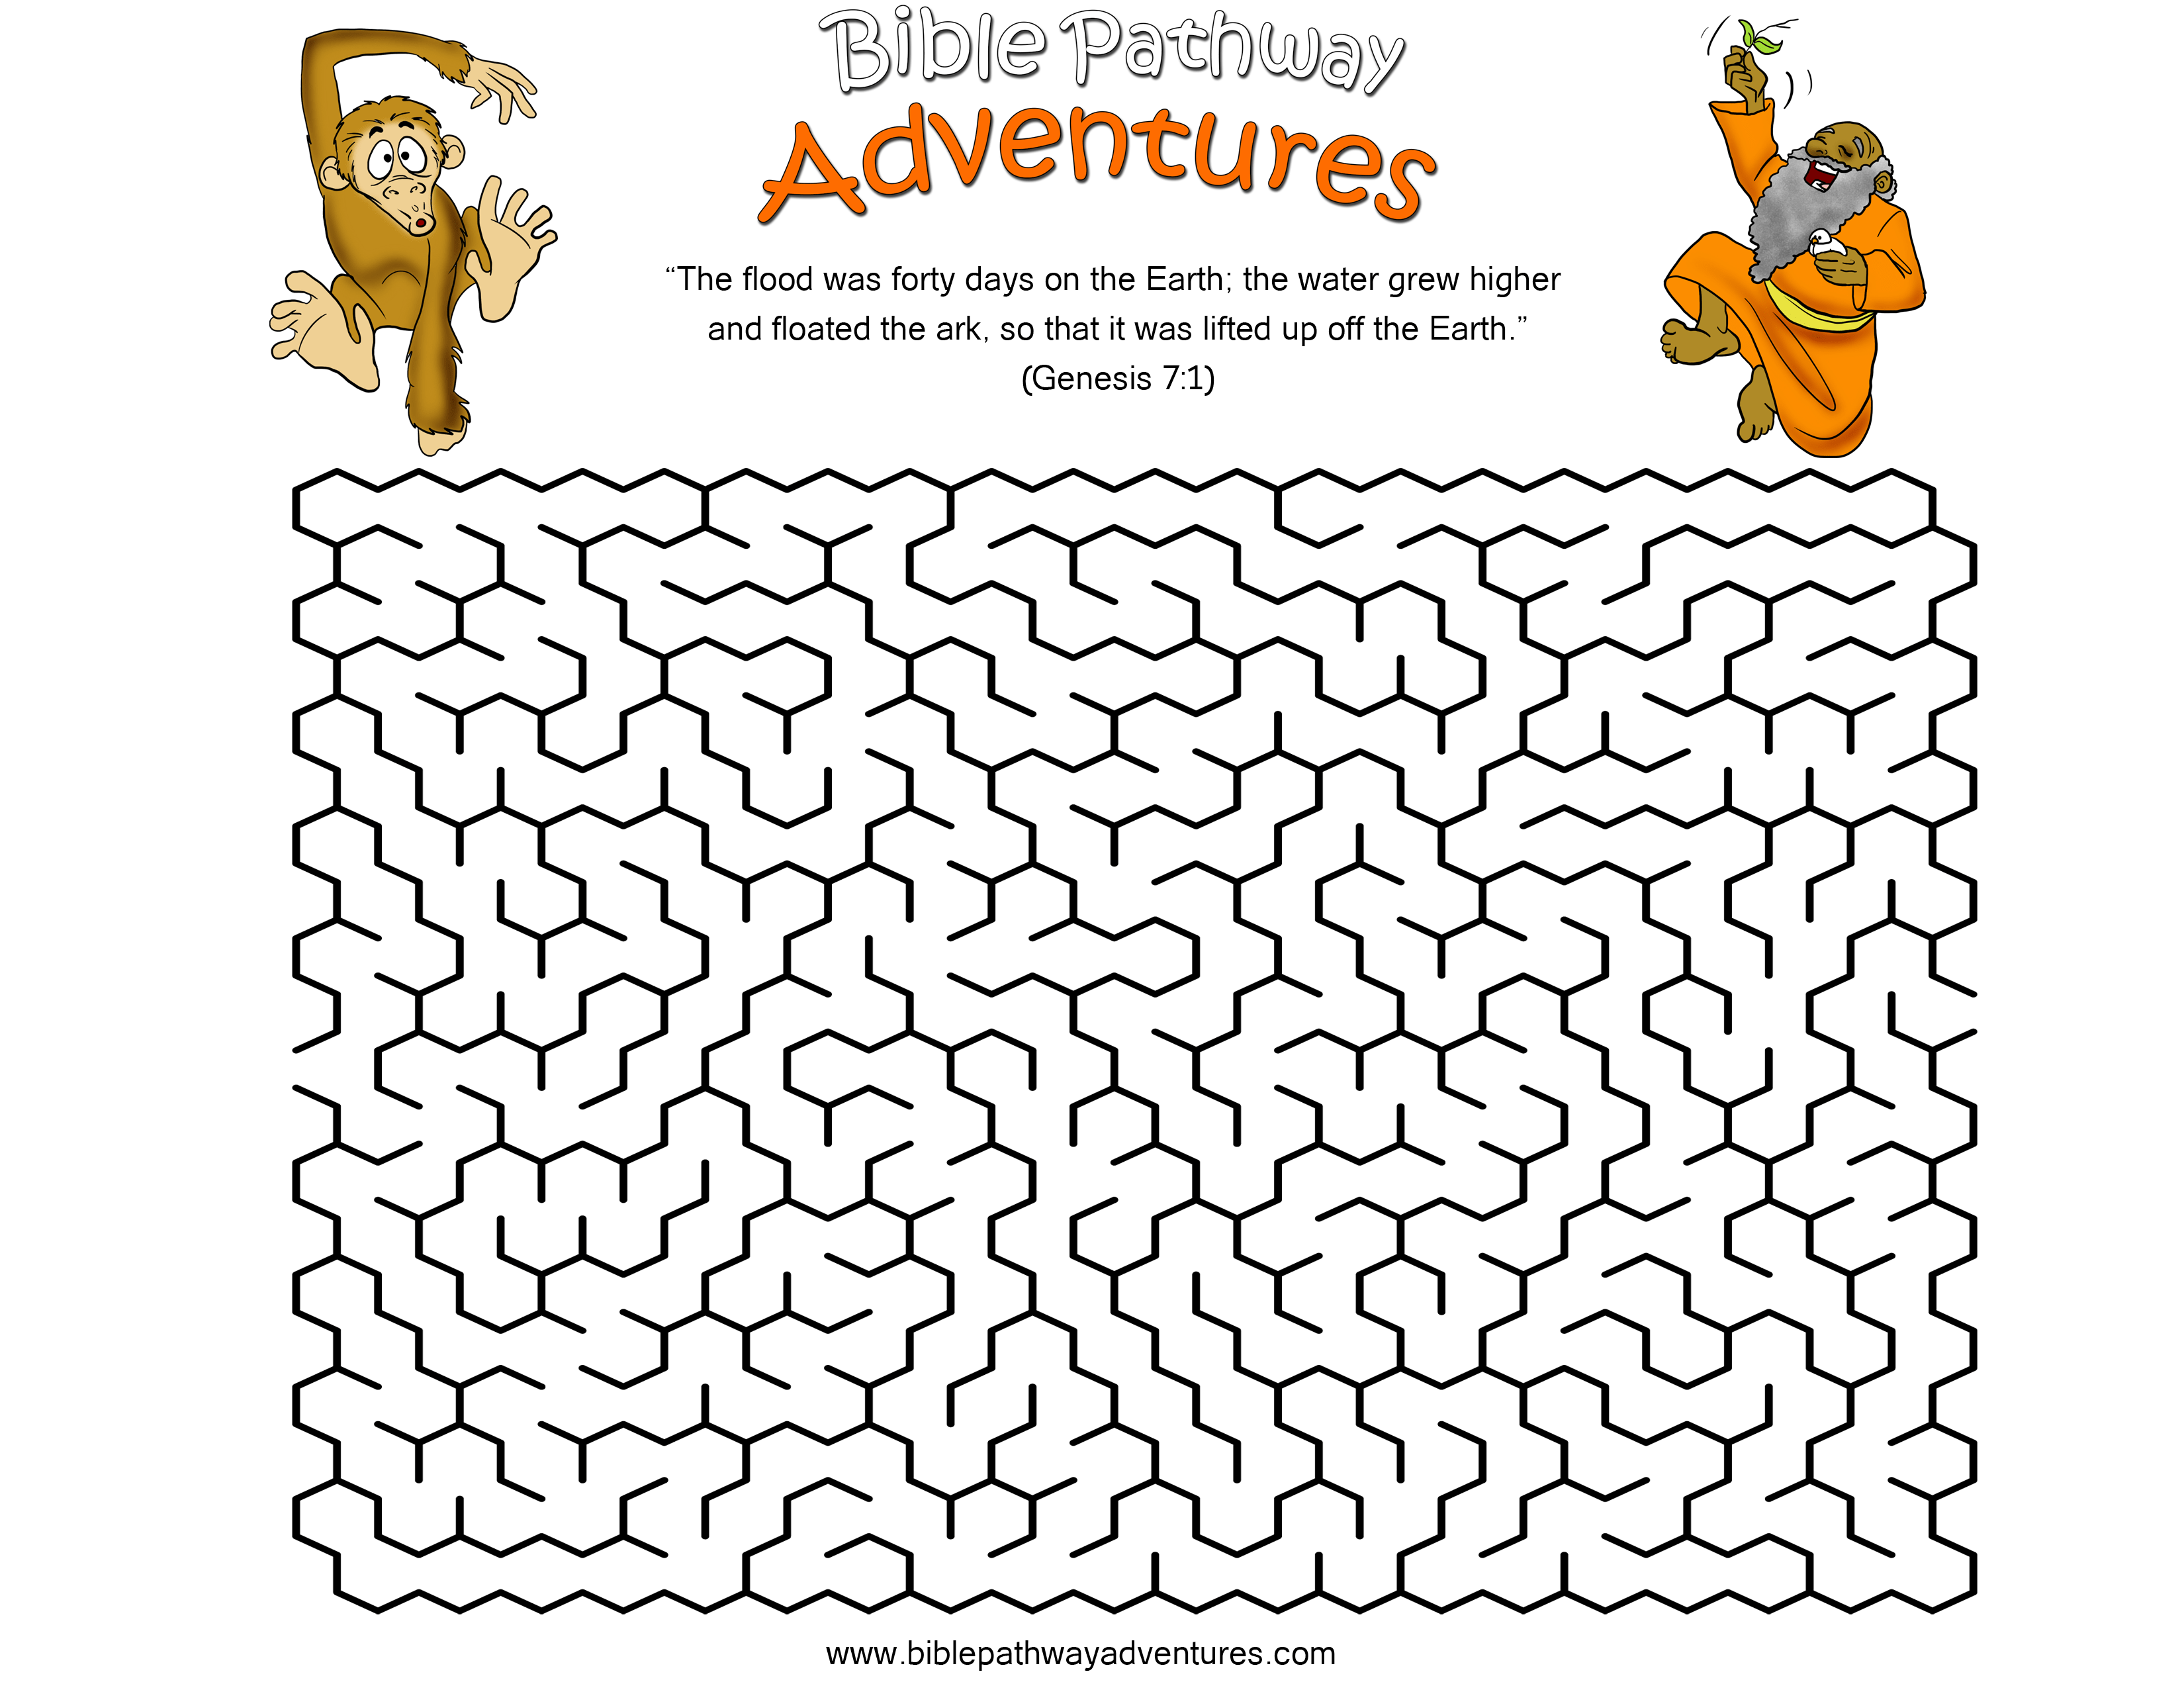 A Maze Activity Sheet For Kids From The Story The Great Flood